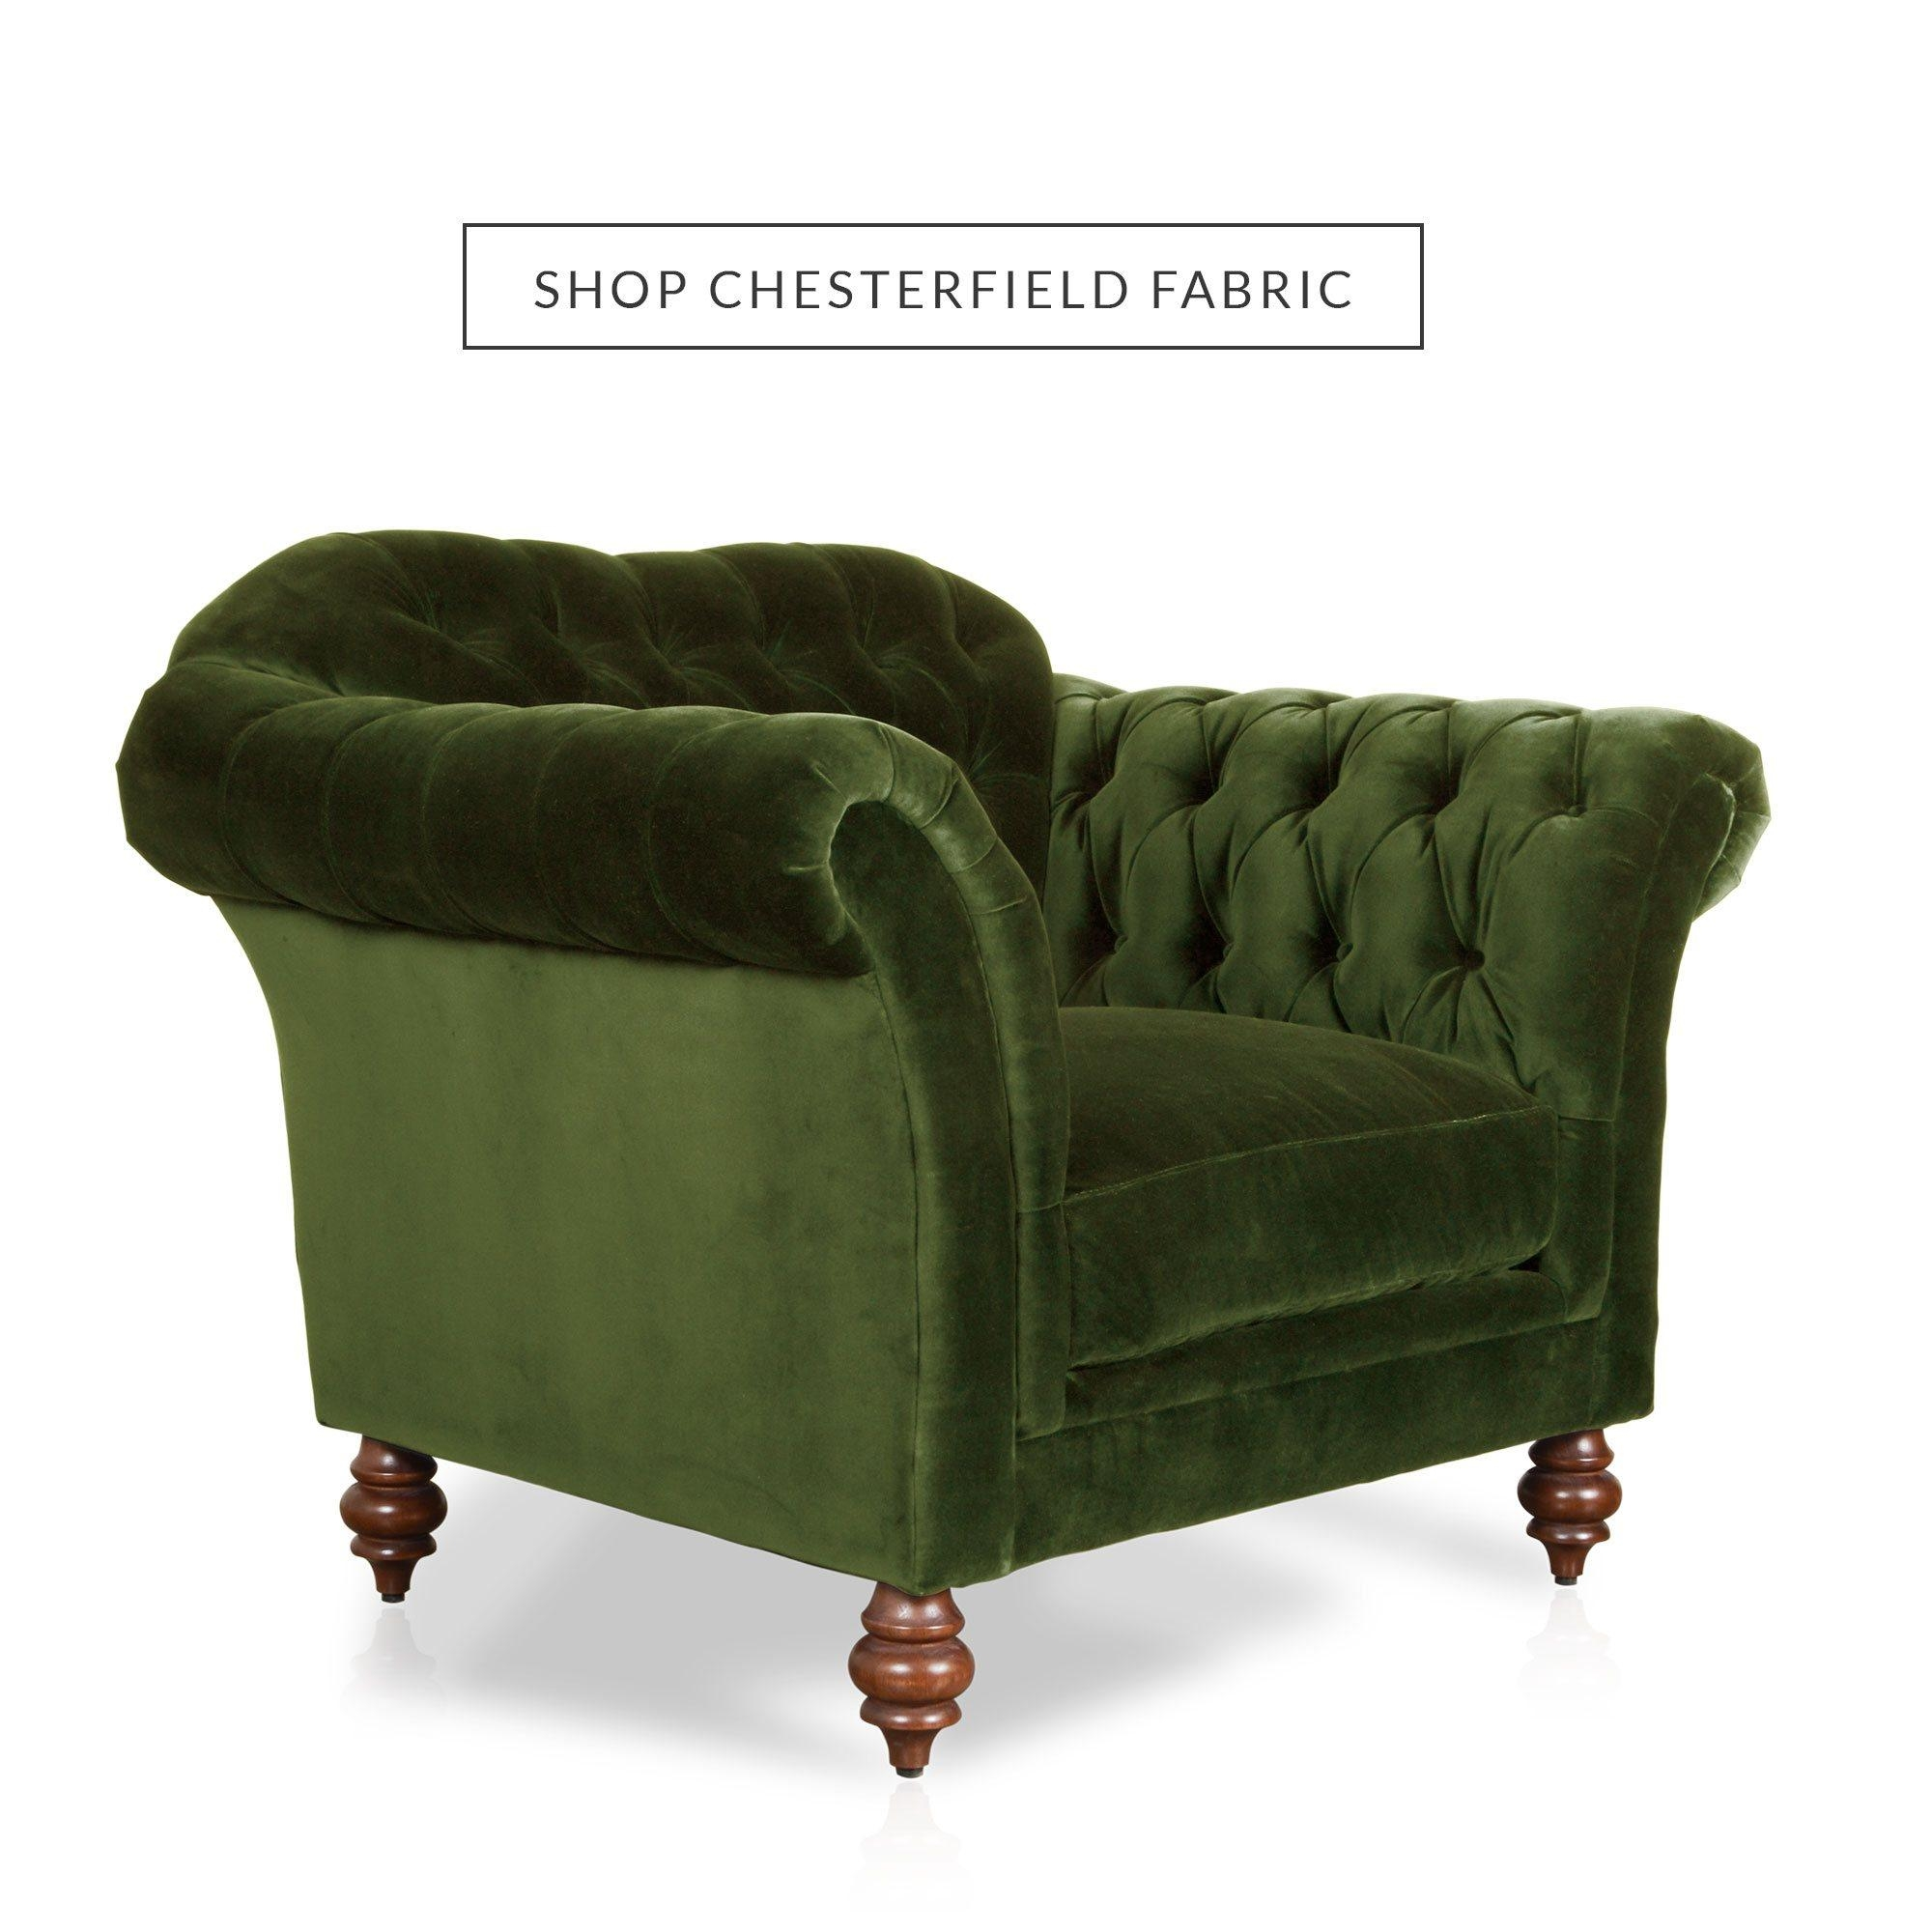 Chesterfield Sofas, Modern Furniture Made In Usa | Cococohome For Chesterfield Sofas And Chairs (Image 9 of 20)